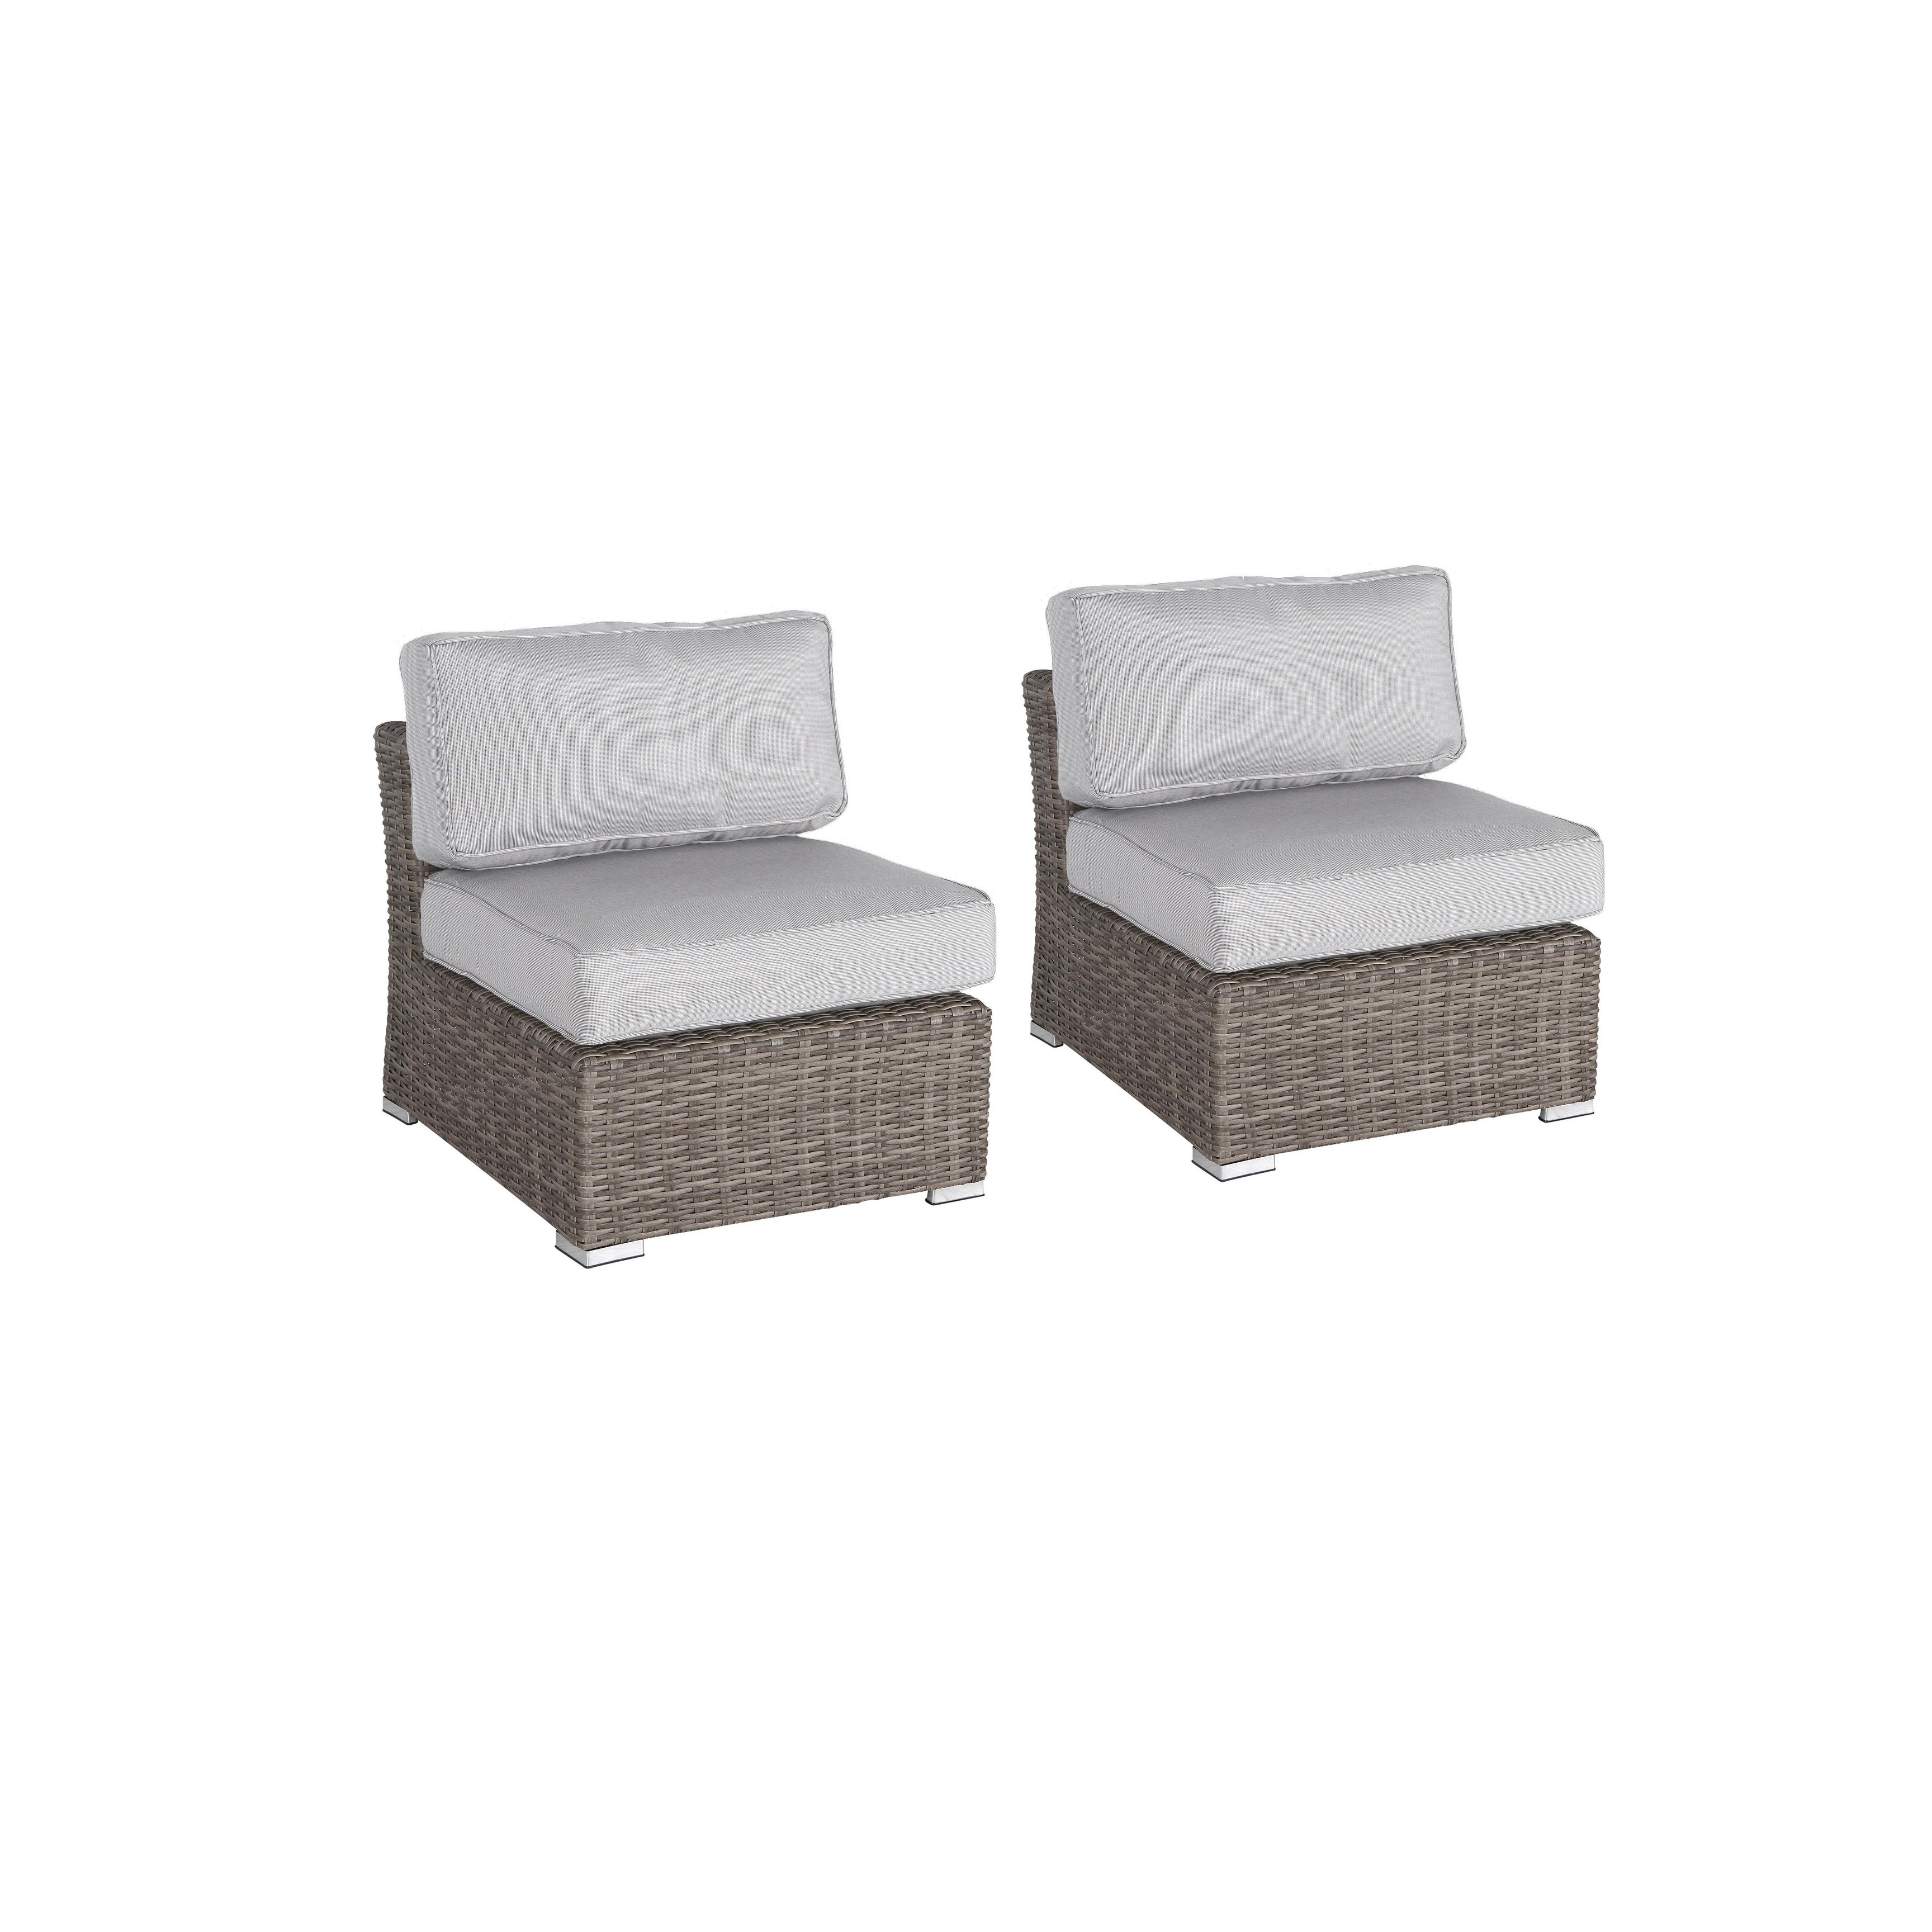 2 Piece Rattan Seating Group With Cushions Overstock 27964982